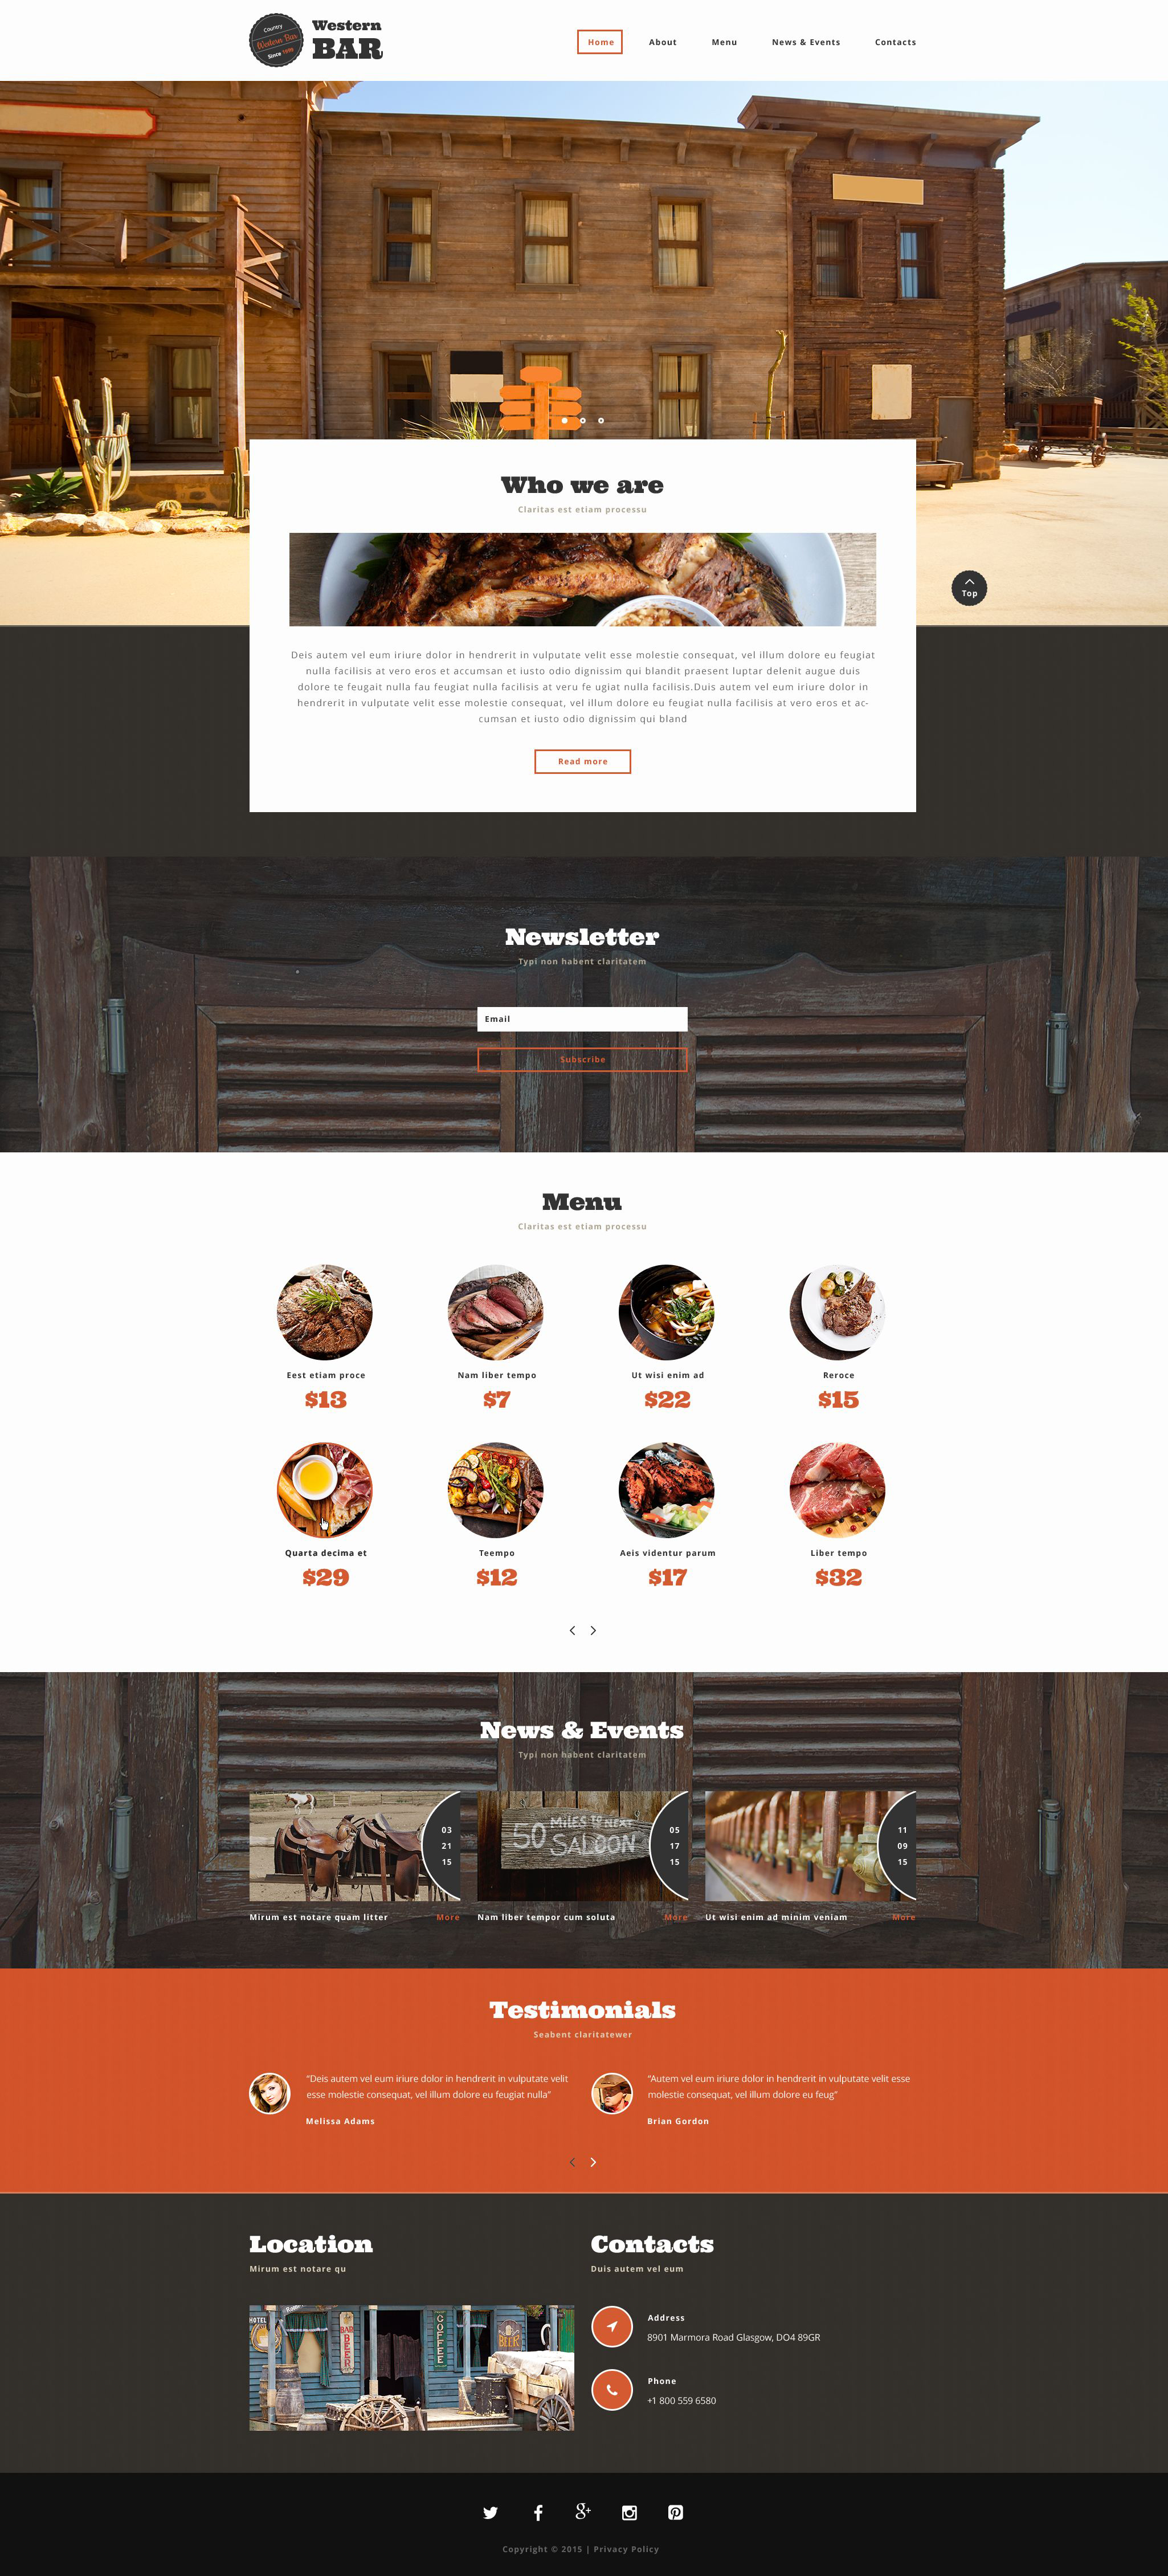 The Western Bar Restaurant Bootstrap Design 54057, one of the best website templates of its kind (cafe and restaurant, most popular), also known as western bar restaurant website template, food website template, meal website template, cuisine website template, drink website template, menu website template, dish website template, wine website template, taste website template, tasty website template, flavor website template, reservation website template, specials website template, recipe website template, launch website template, dinner website template, testimonials website template, offers website template, dietetic website template, kitchen website template, cookbook website template, vegetarian website template, cocktail website template, special cancellation website template, gifts website template, bonuses website template, discount website template, patrons and related with western bar restaurant, food, meal, cuisine, drink, menu, dish, wine, taste, tasty, flavor, reservation, specials, recipe, launch, dinner, testimonials, offers, dietetic, kitchen, cookbook, vegetarian, cocktail, special cancellation, gifts, bonuses, discount, patrons, etc.